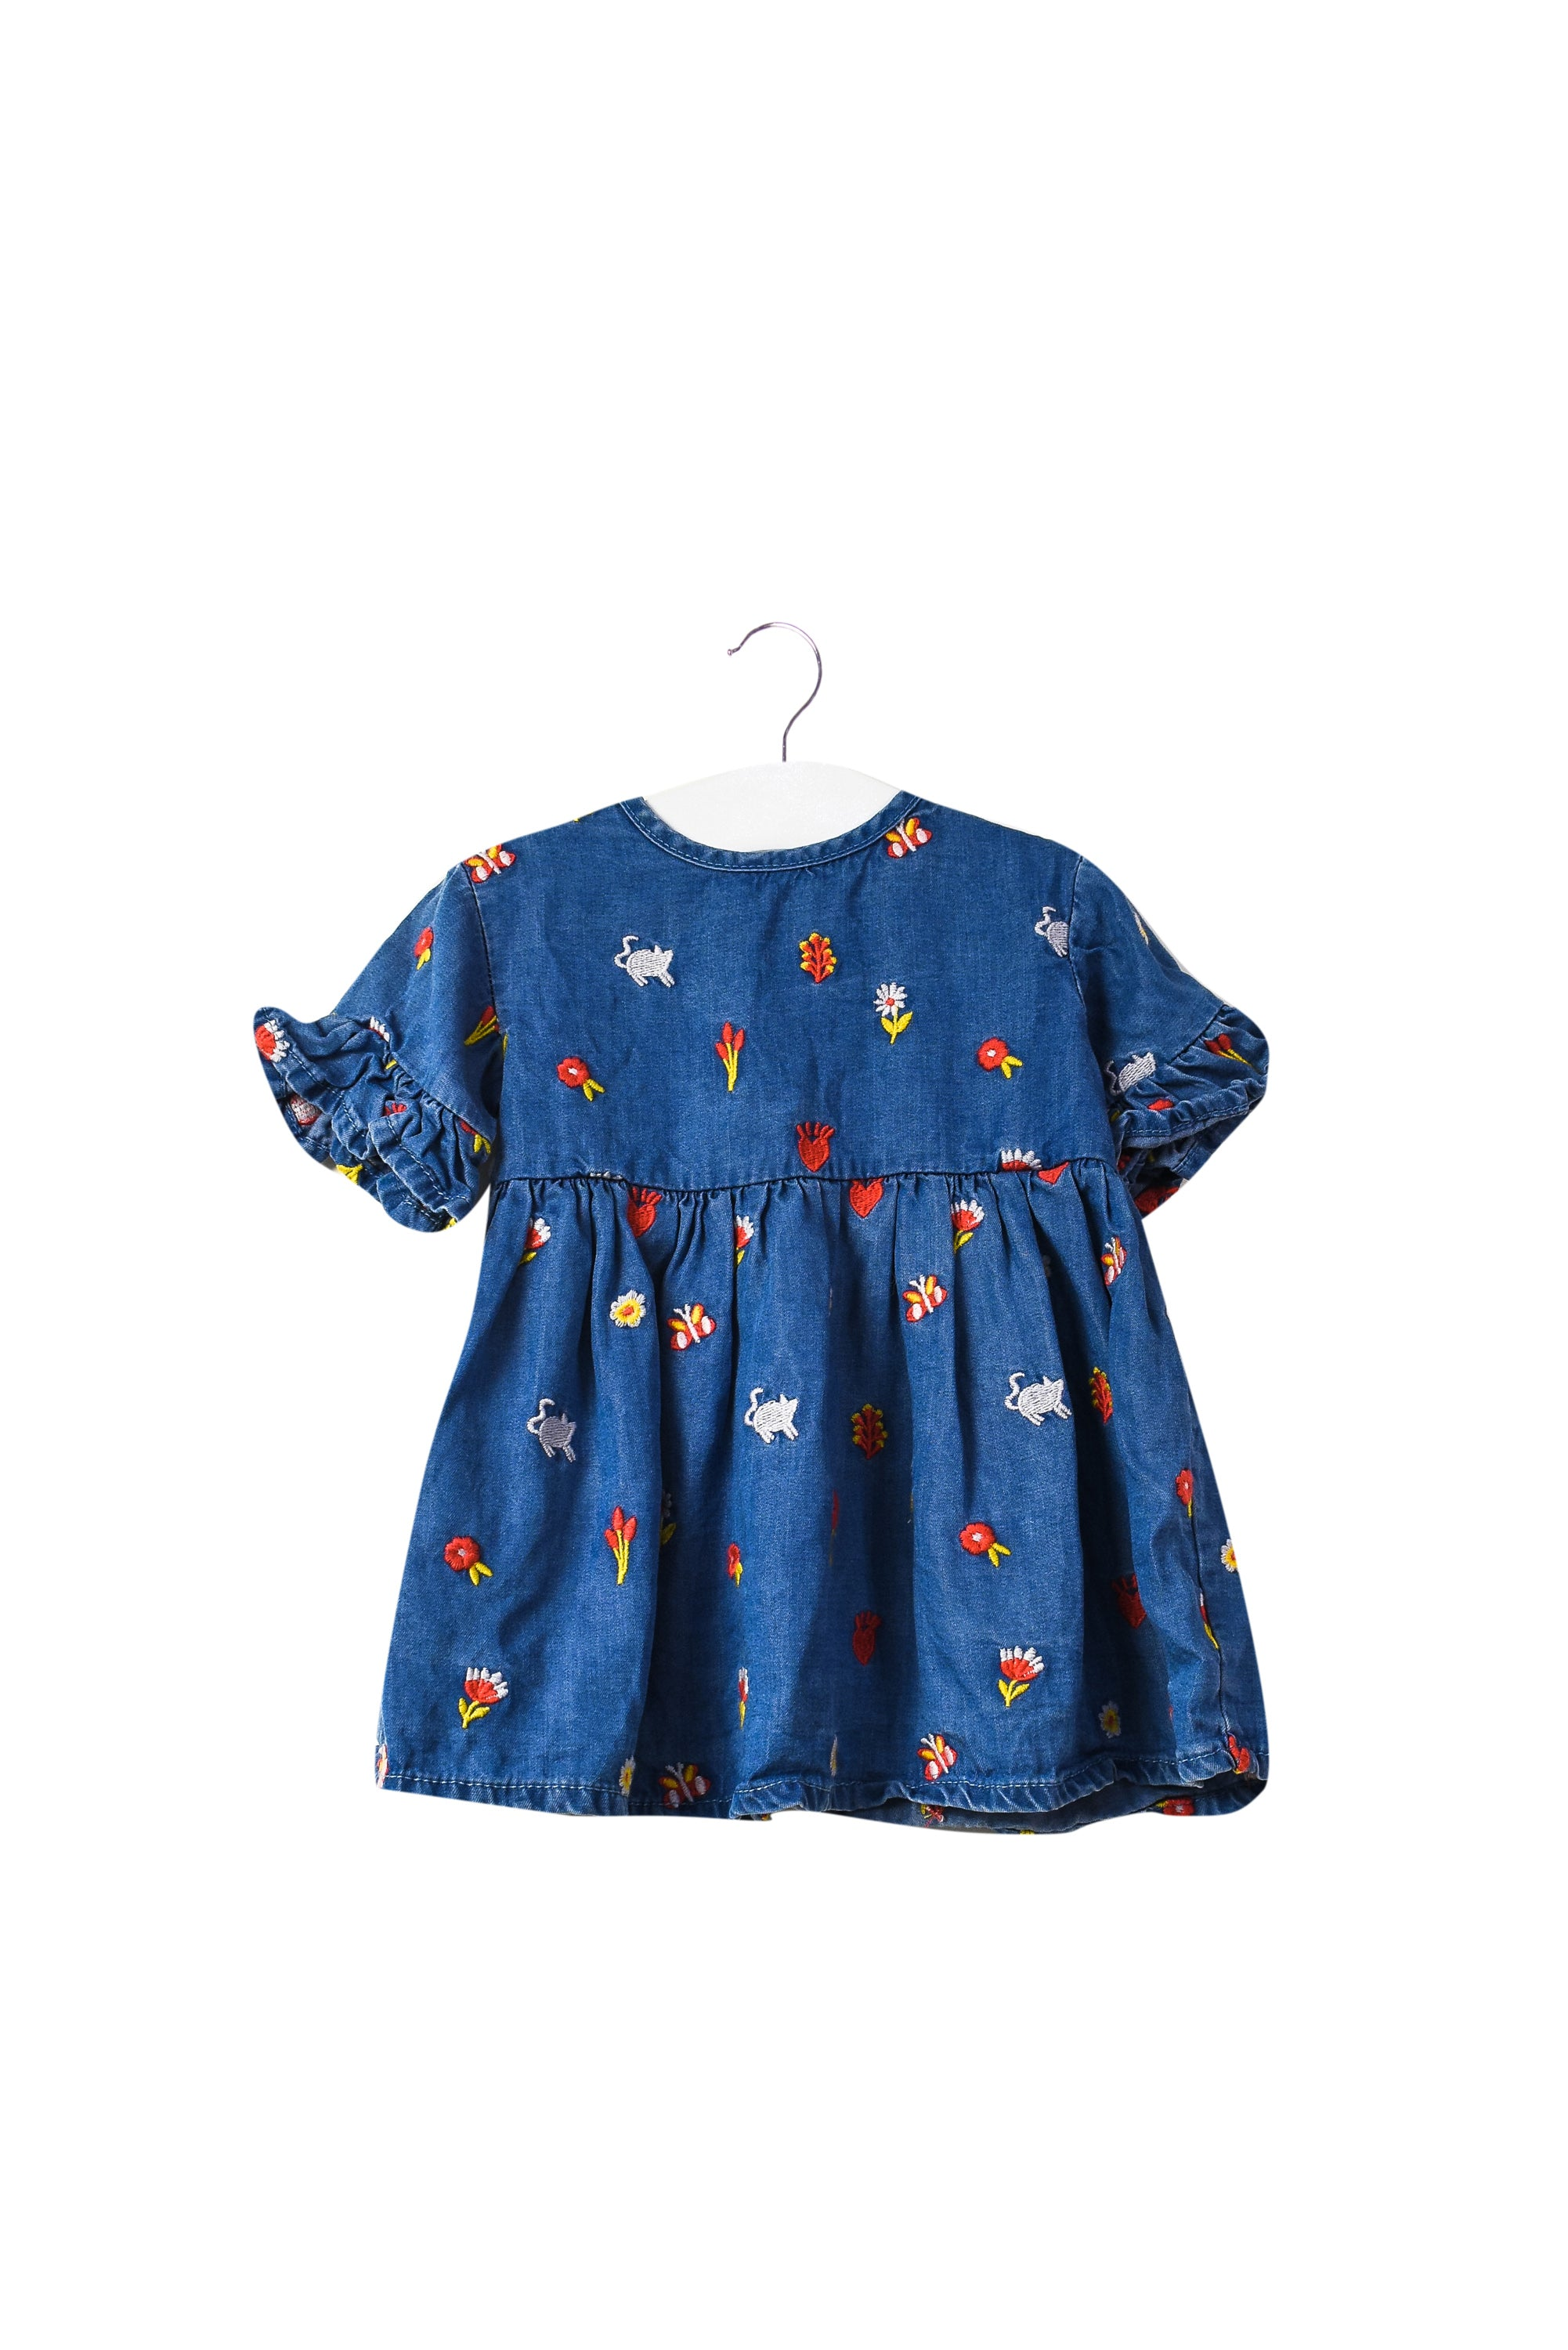 10044357 Seed Baby~Short Sleeve Dress 0-3M at Retykle